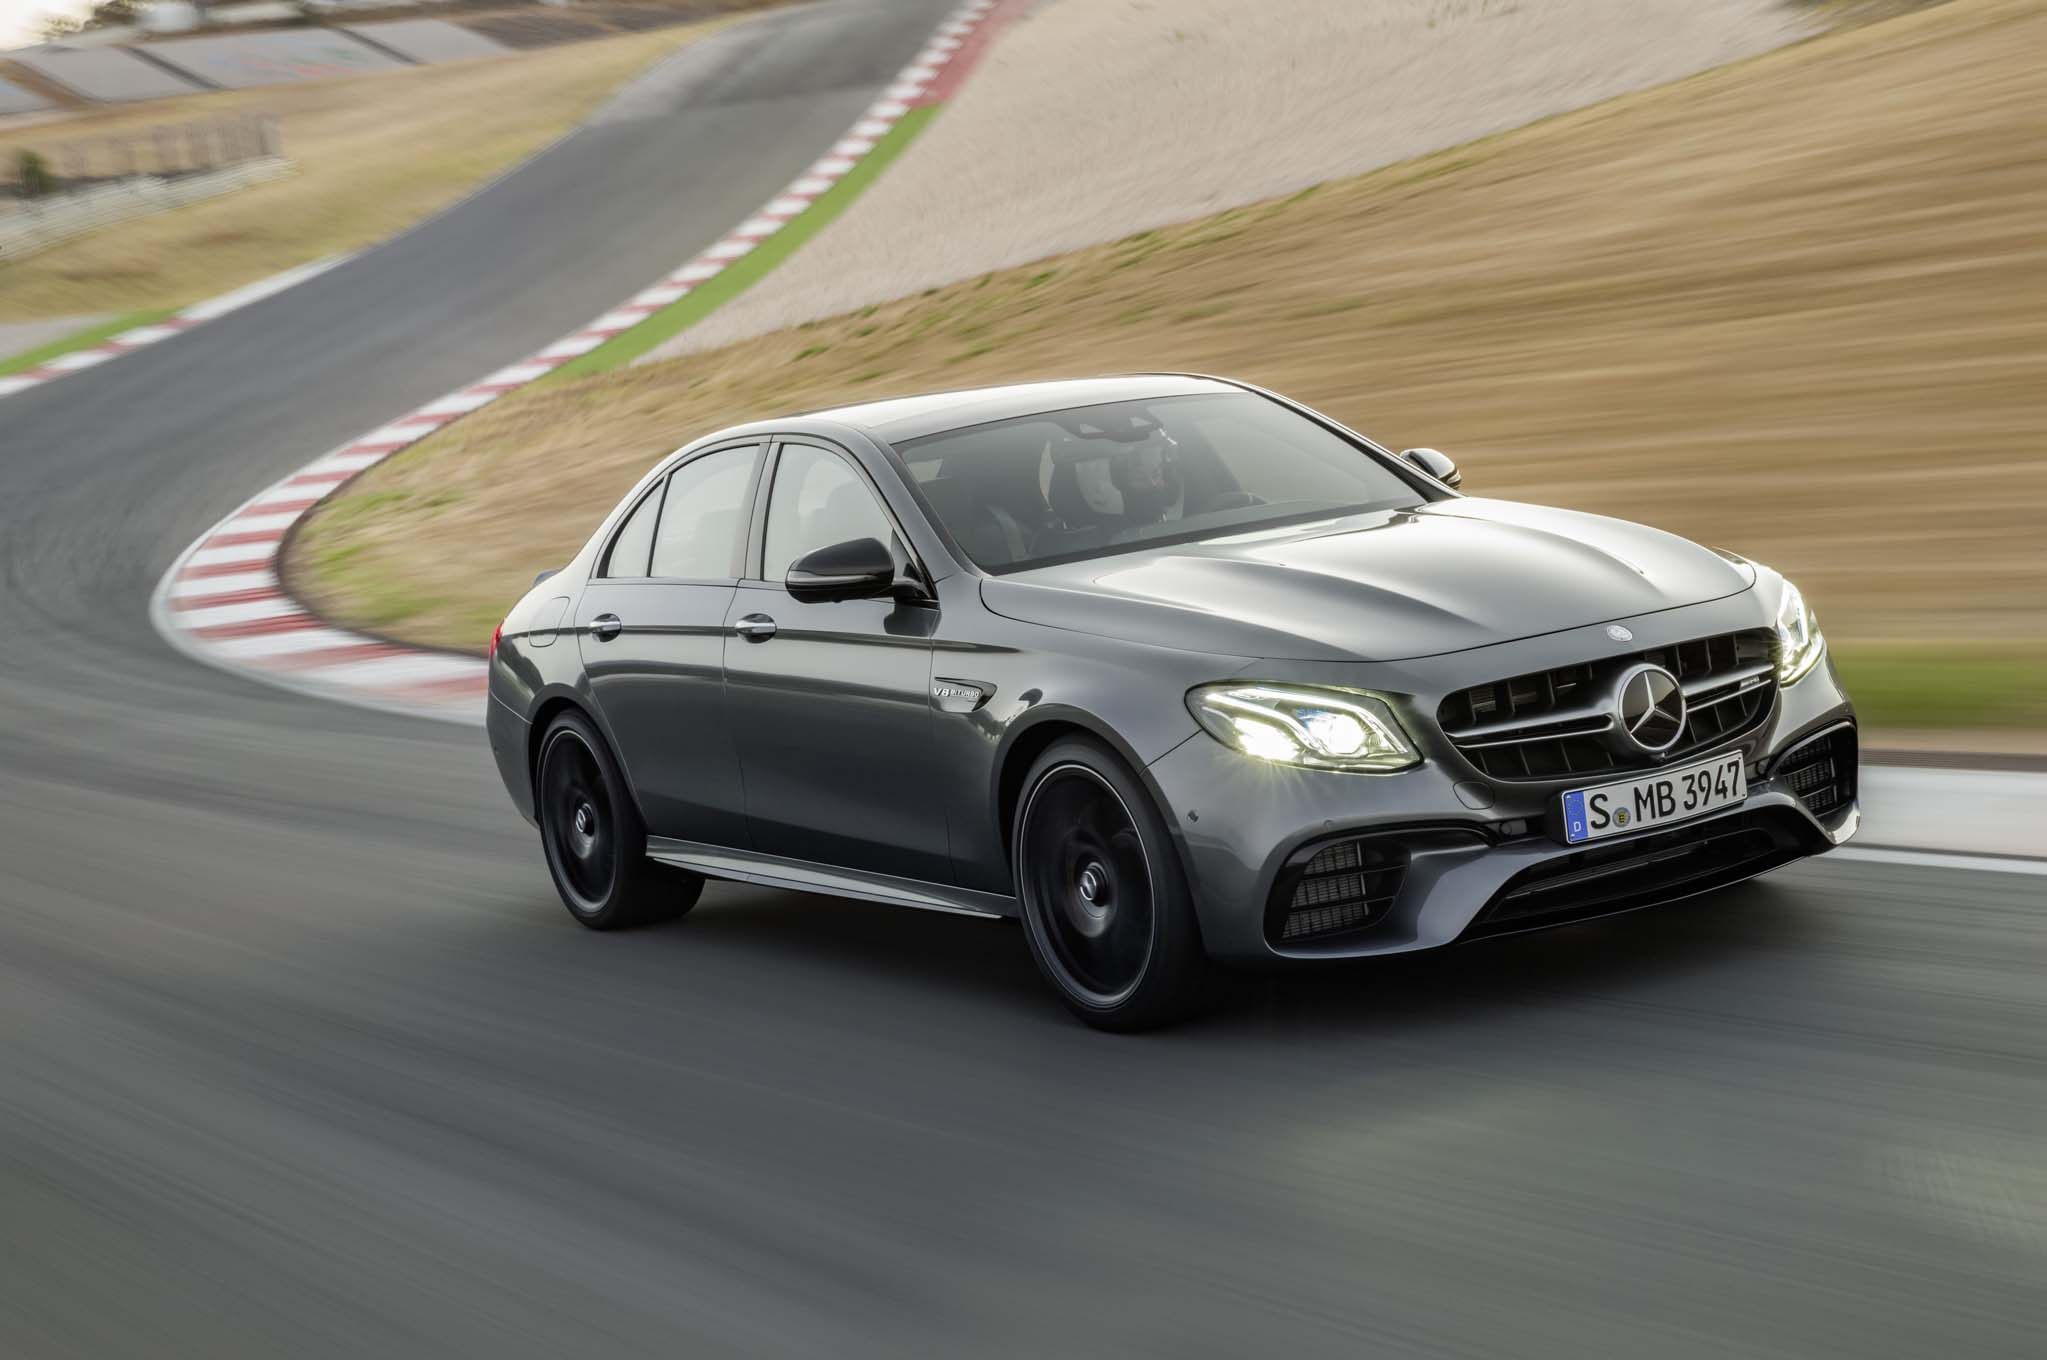 2018 Mercedes Amg E63 S First Edition Quick Take Review Automobile